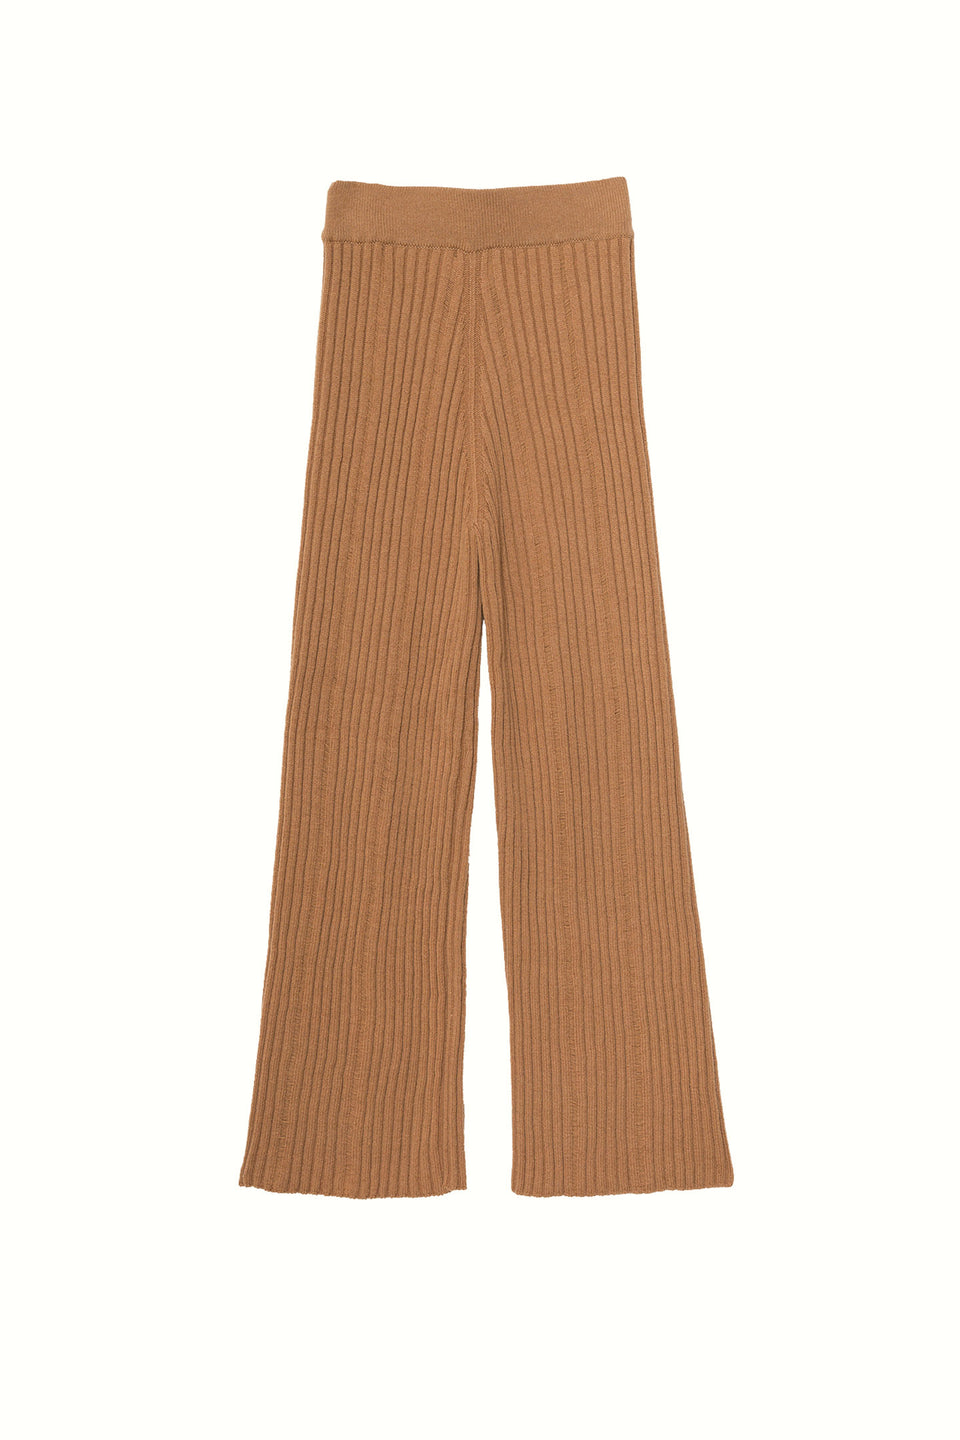 Knit Loose Trousers